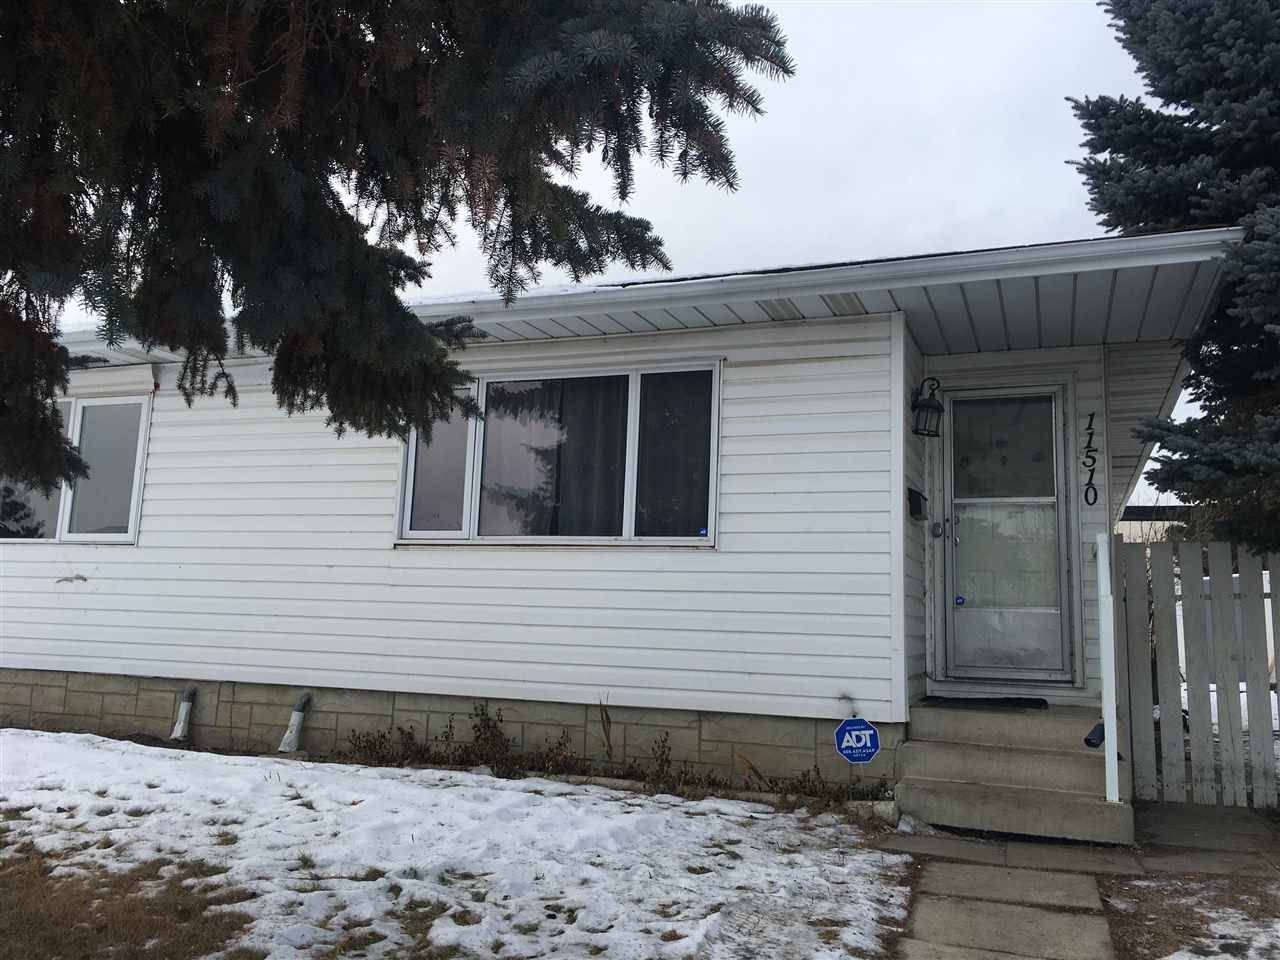 Main Photo: 11510 32 Street in Edmonton: Zone 23 House Half Duplex for sale : MLS®# E4200850